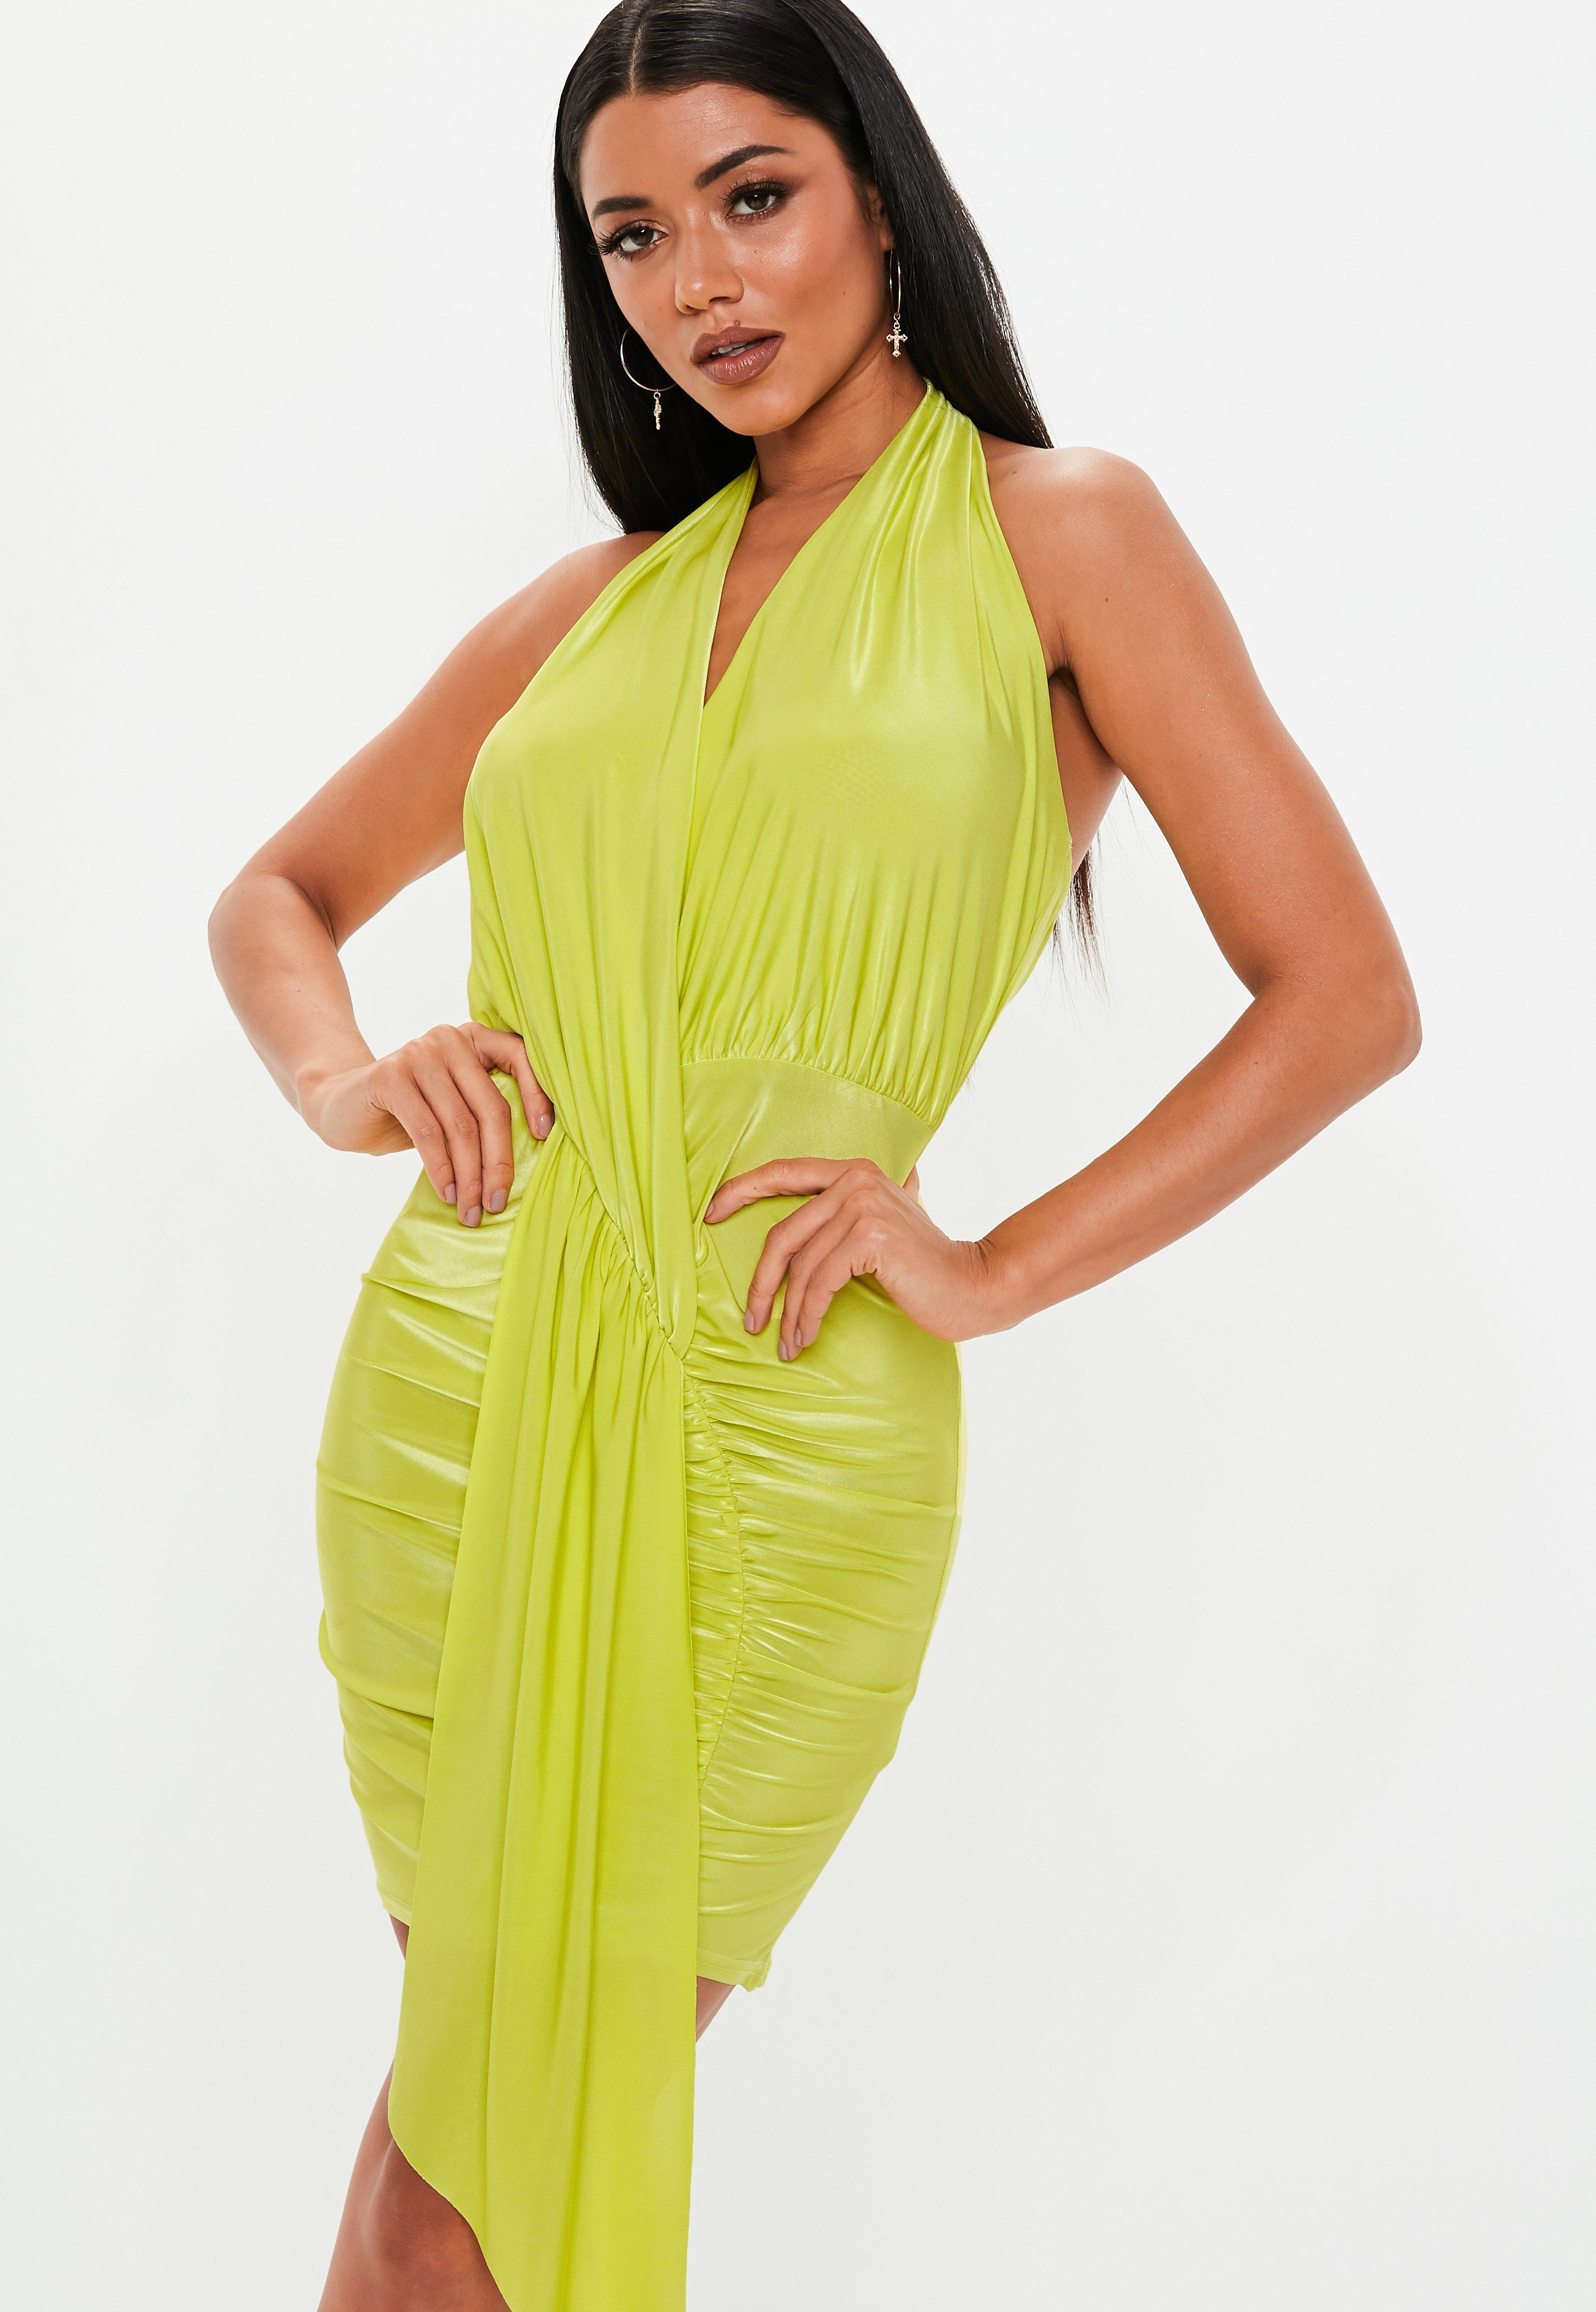 f8318acac2 Satin Dress - Silky Dresses Online